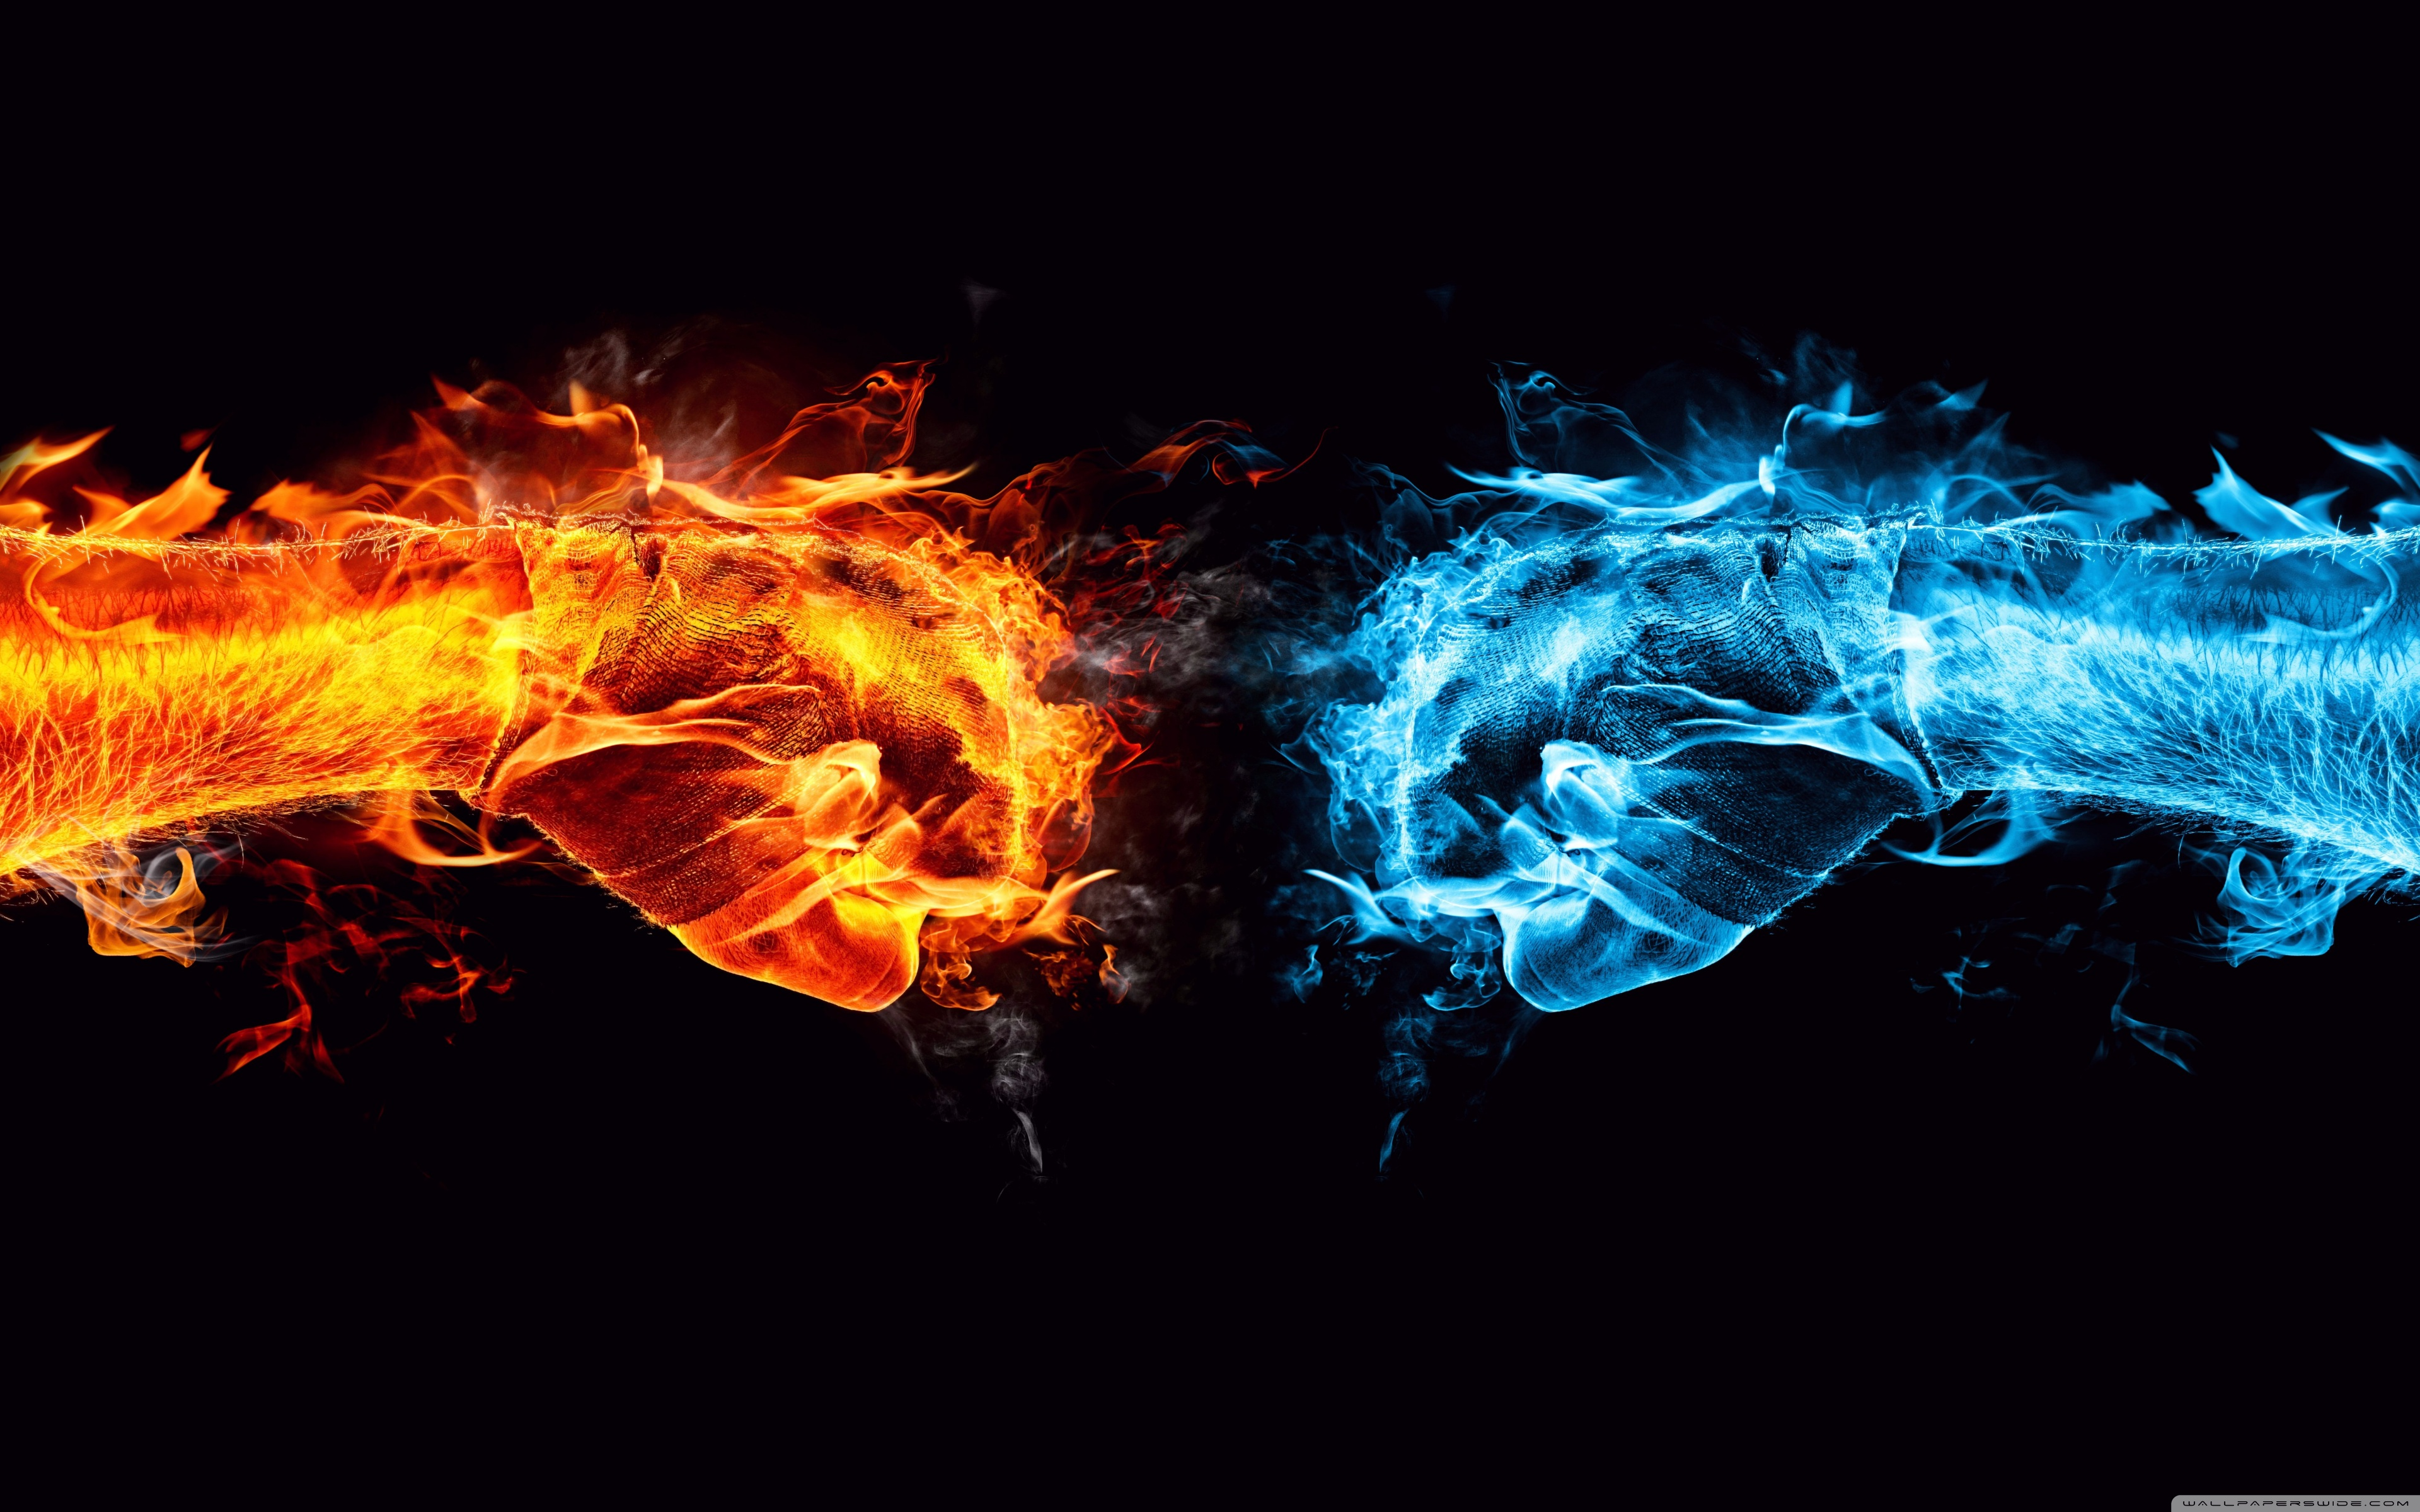 Fire Pictures Wallpaper